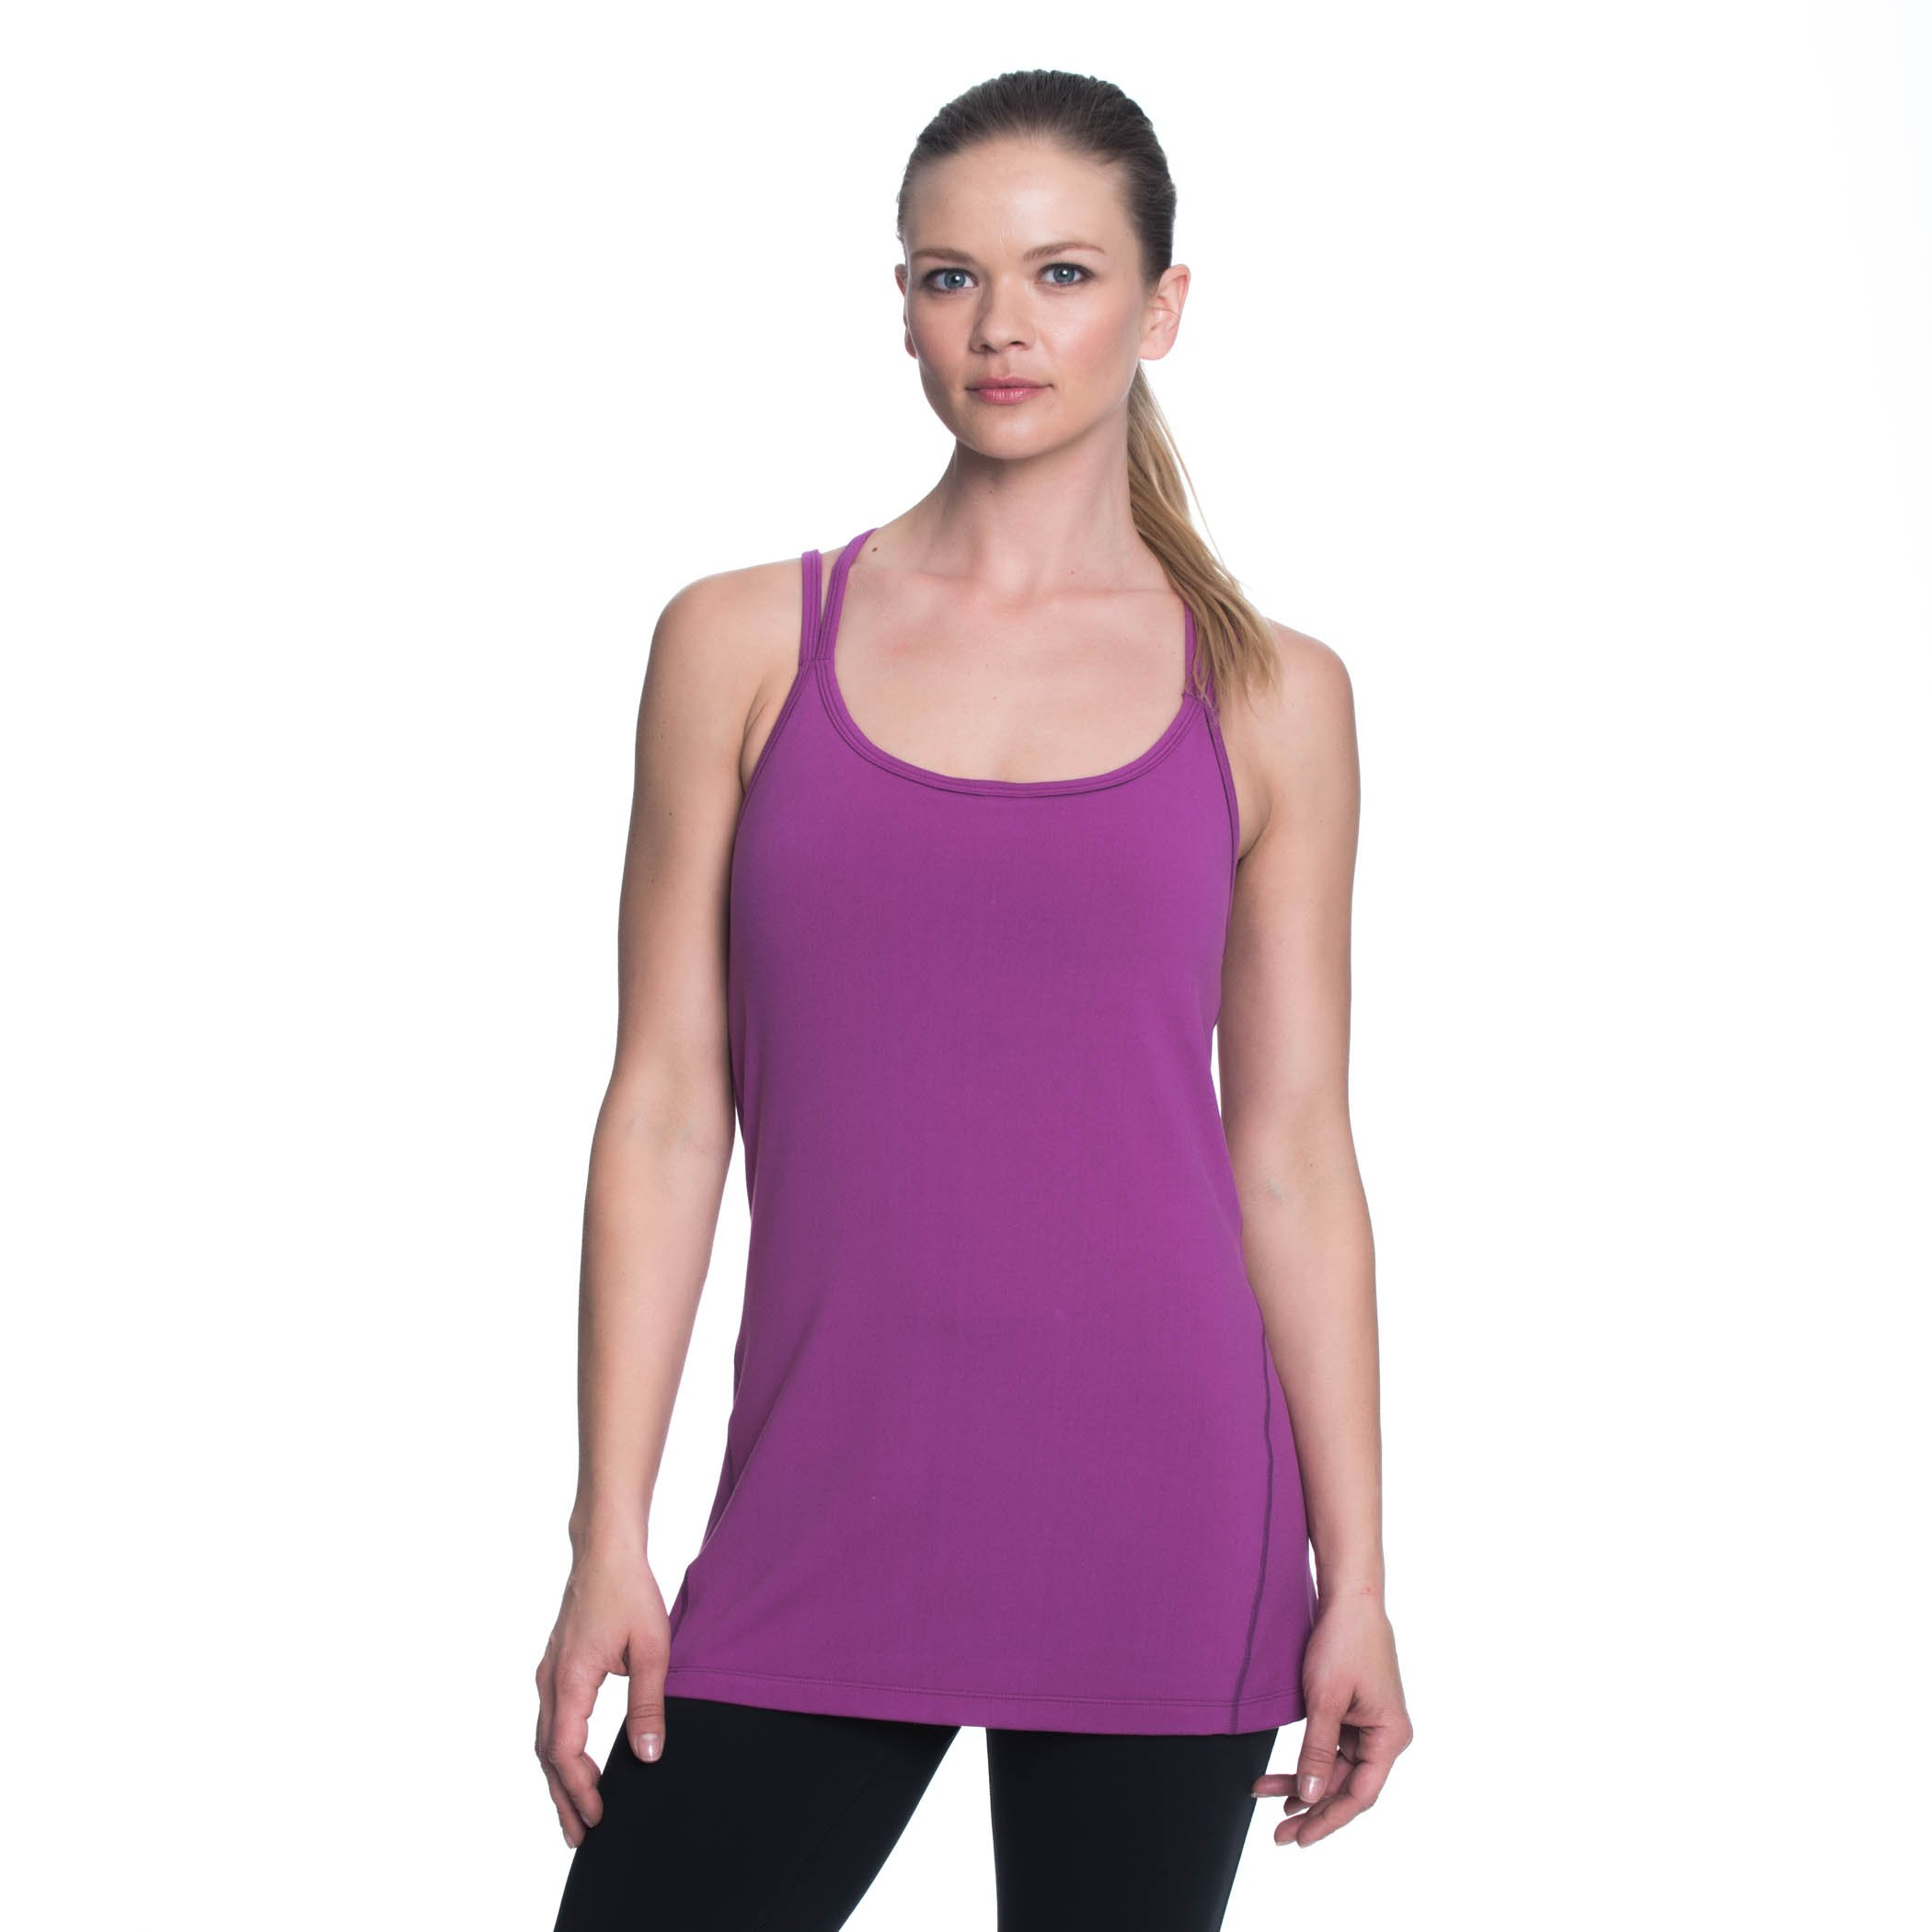 Gaiam Women's Lana Tank Top with Built in Medium Impact Wireless Bra - Purple Fine Wine, Medium